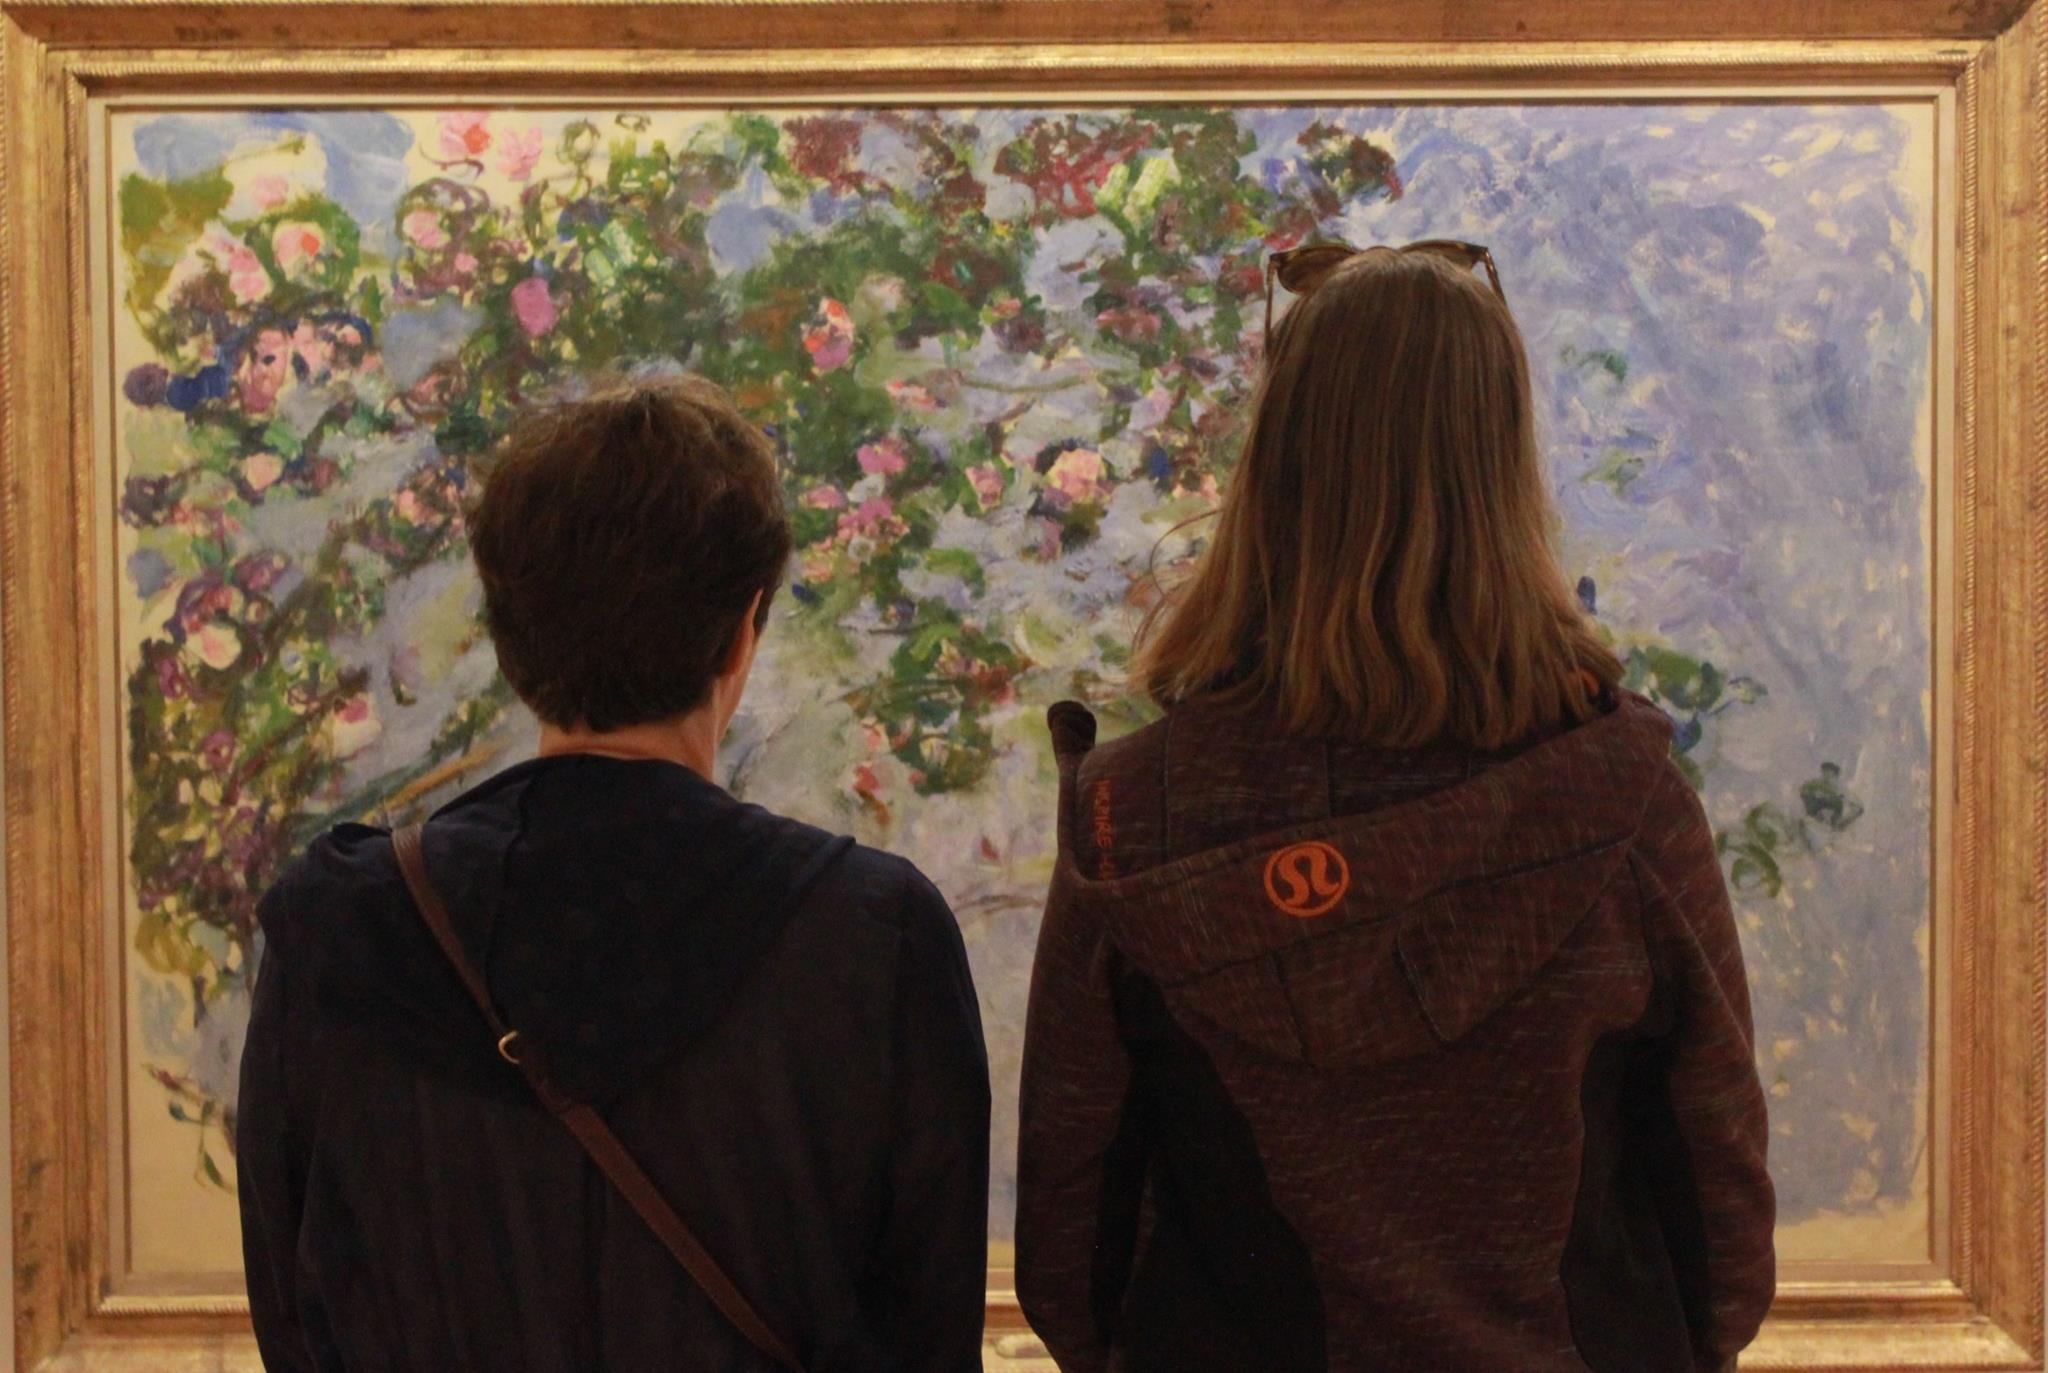 The next day we went to see the Monet exhibition at the Vancouver Art Gallery with my mother.